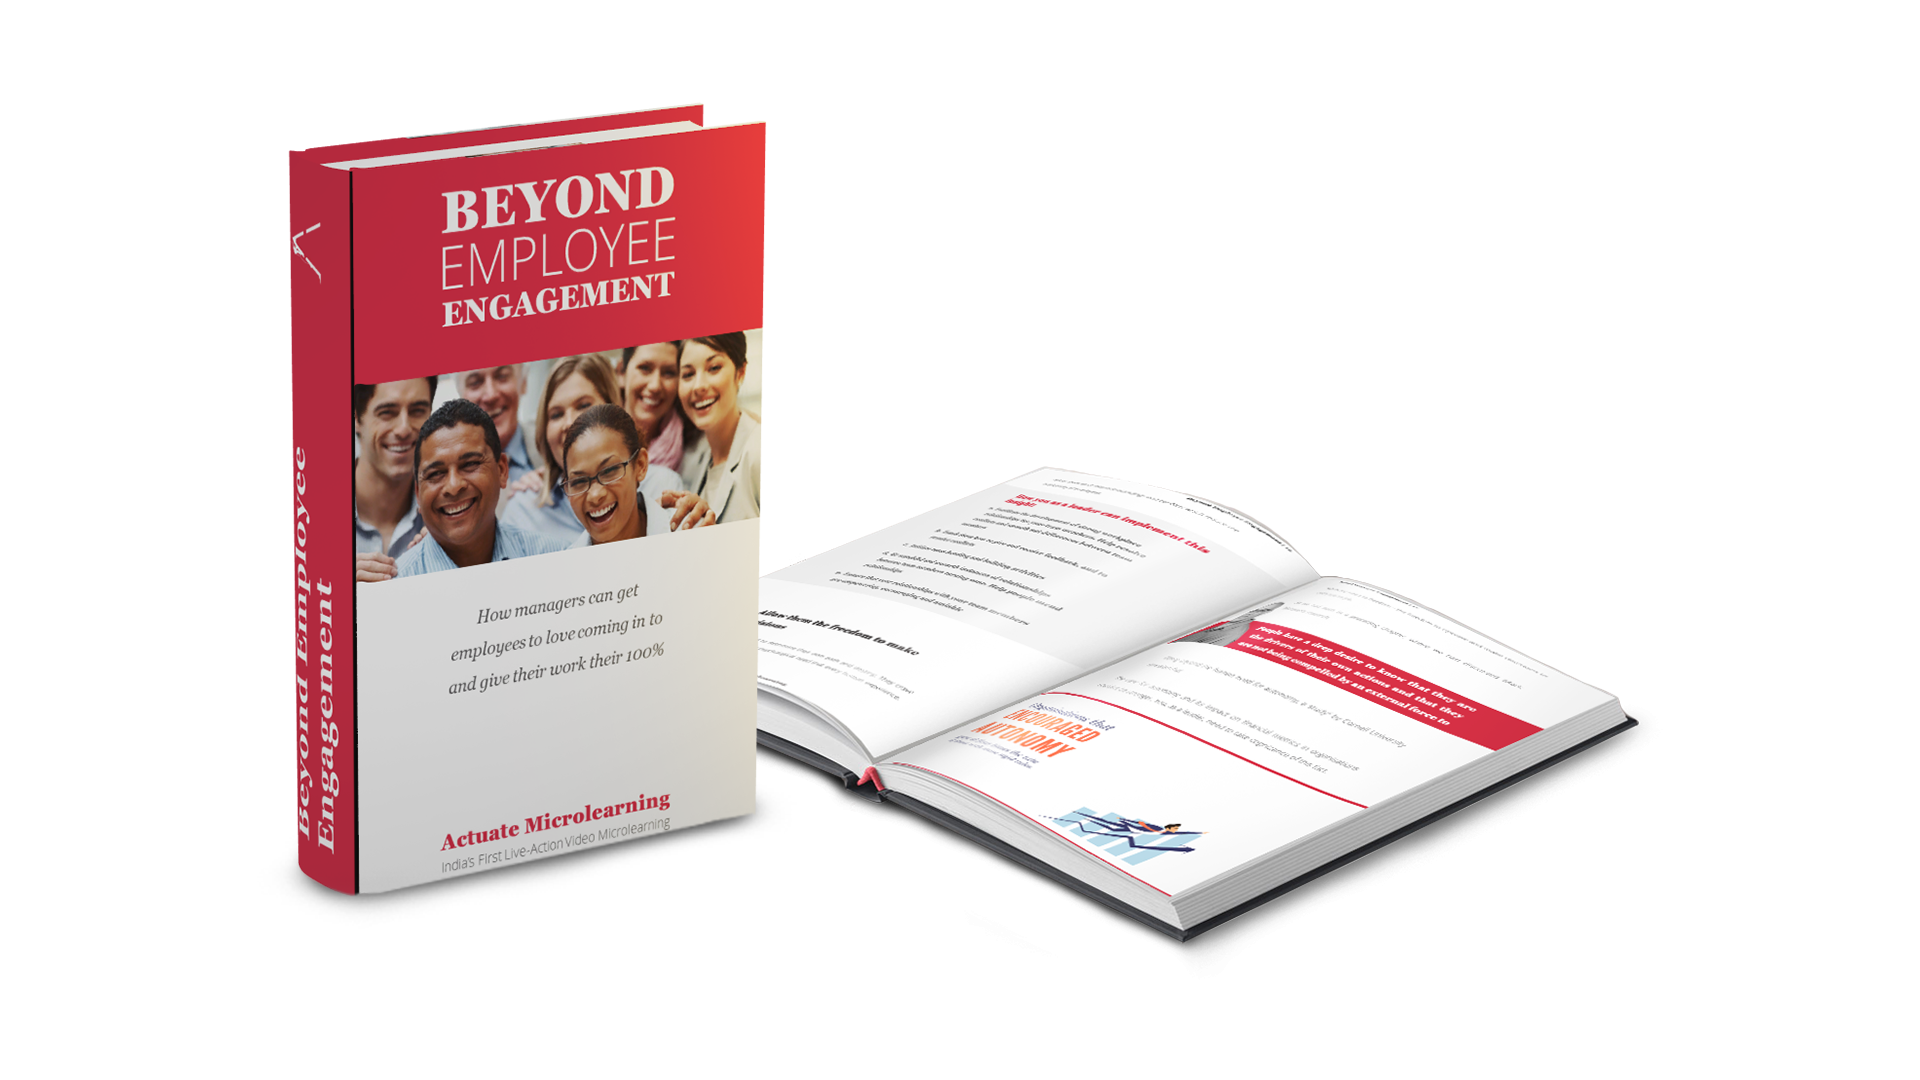 Beyond Employee Engagement